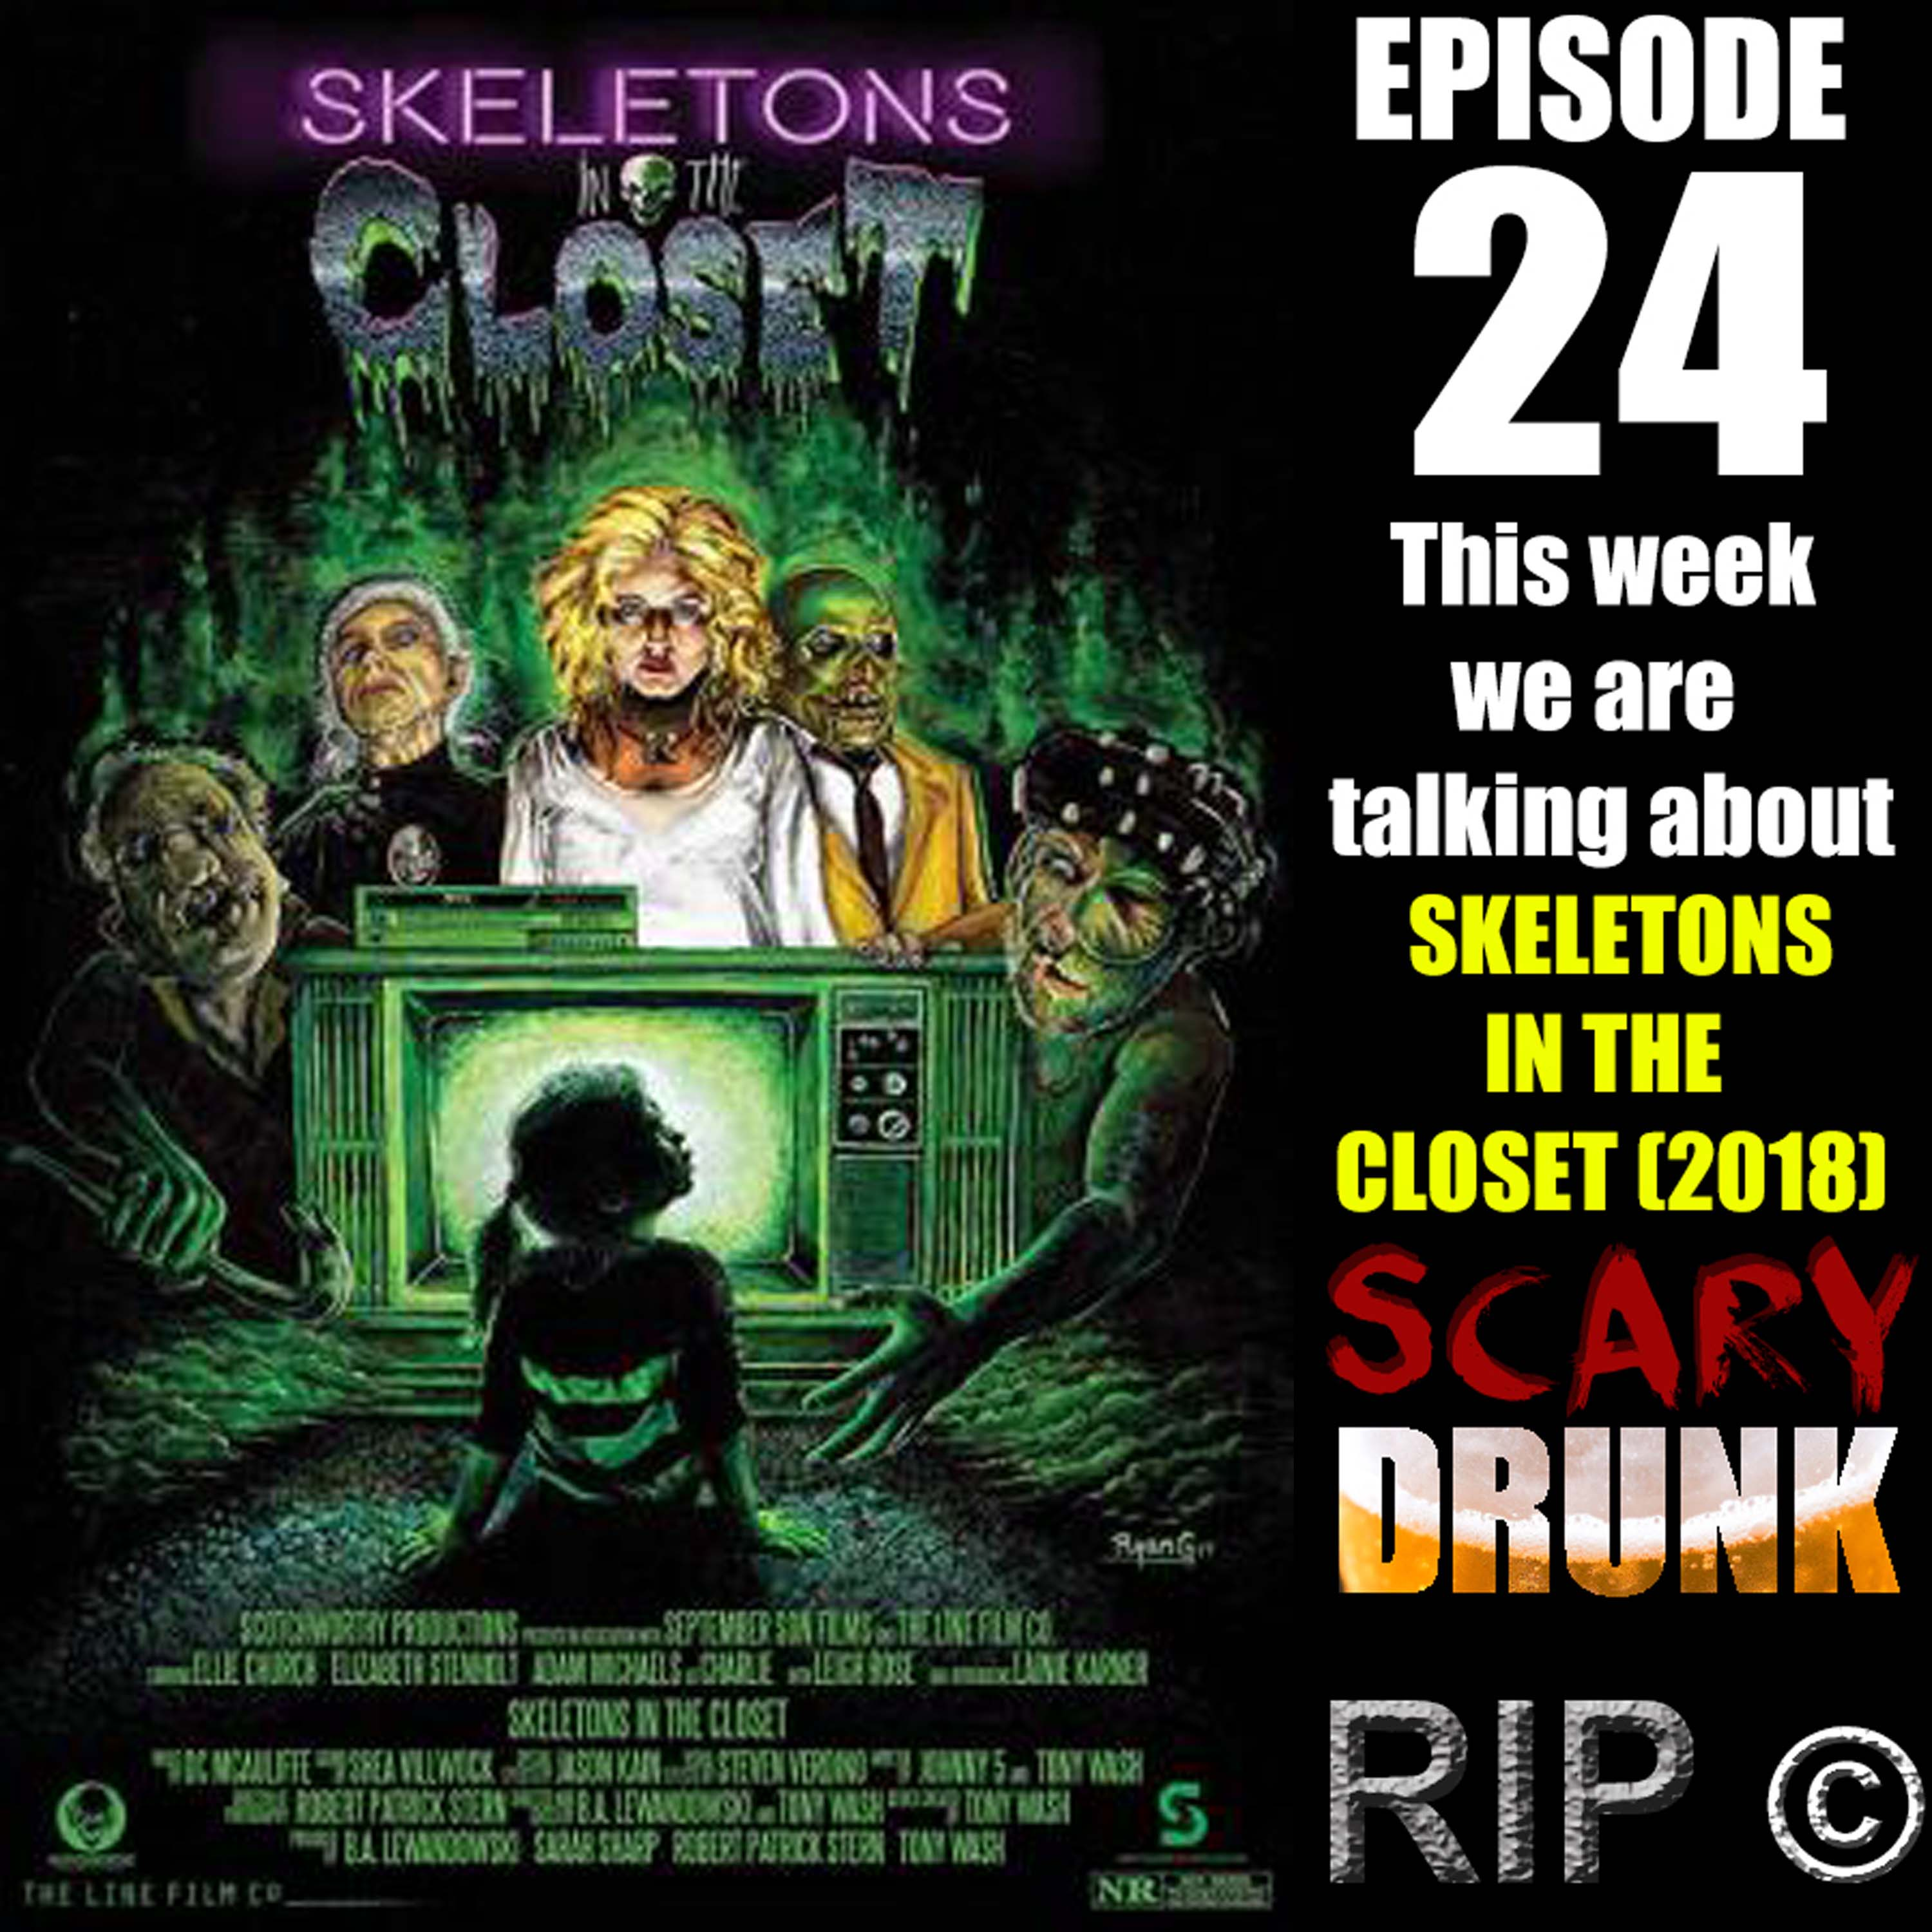 Scary Drunk Episode 24 Skeletons In The Closet 2018